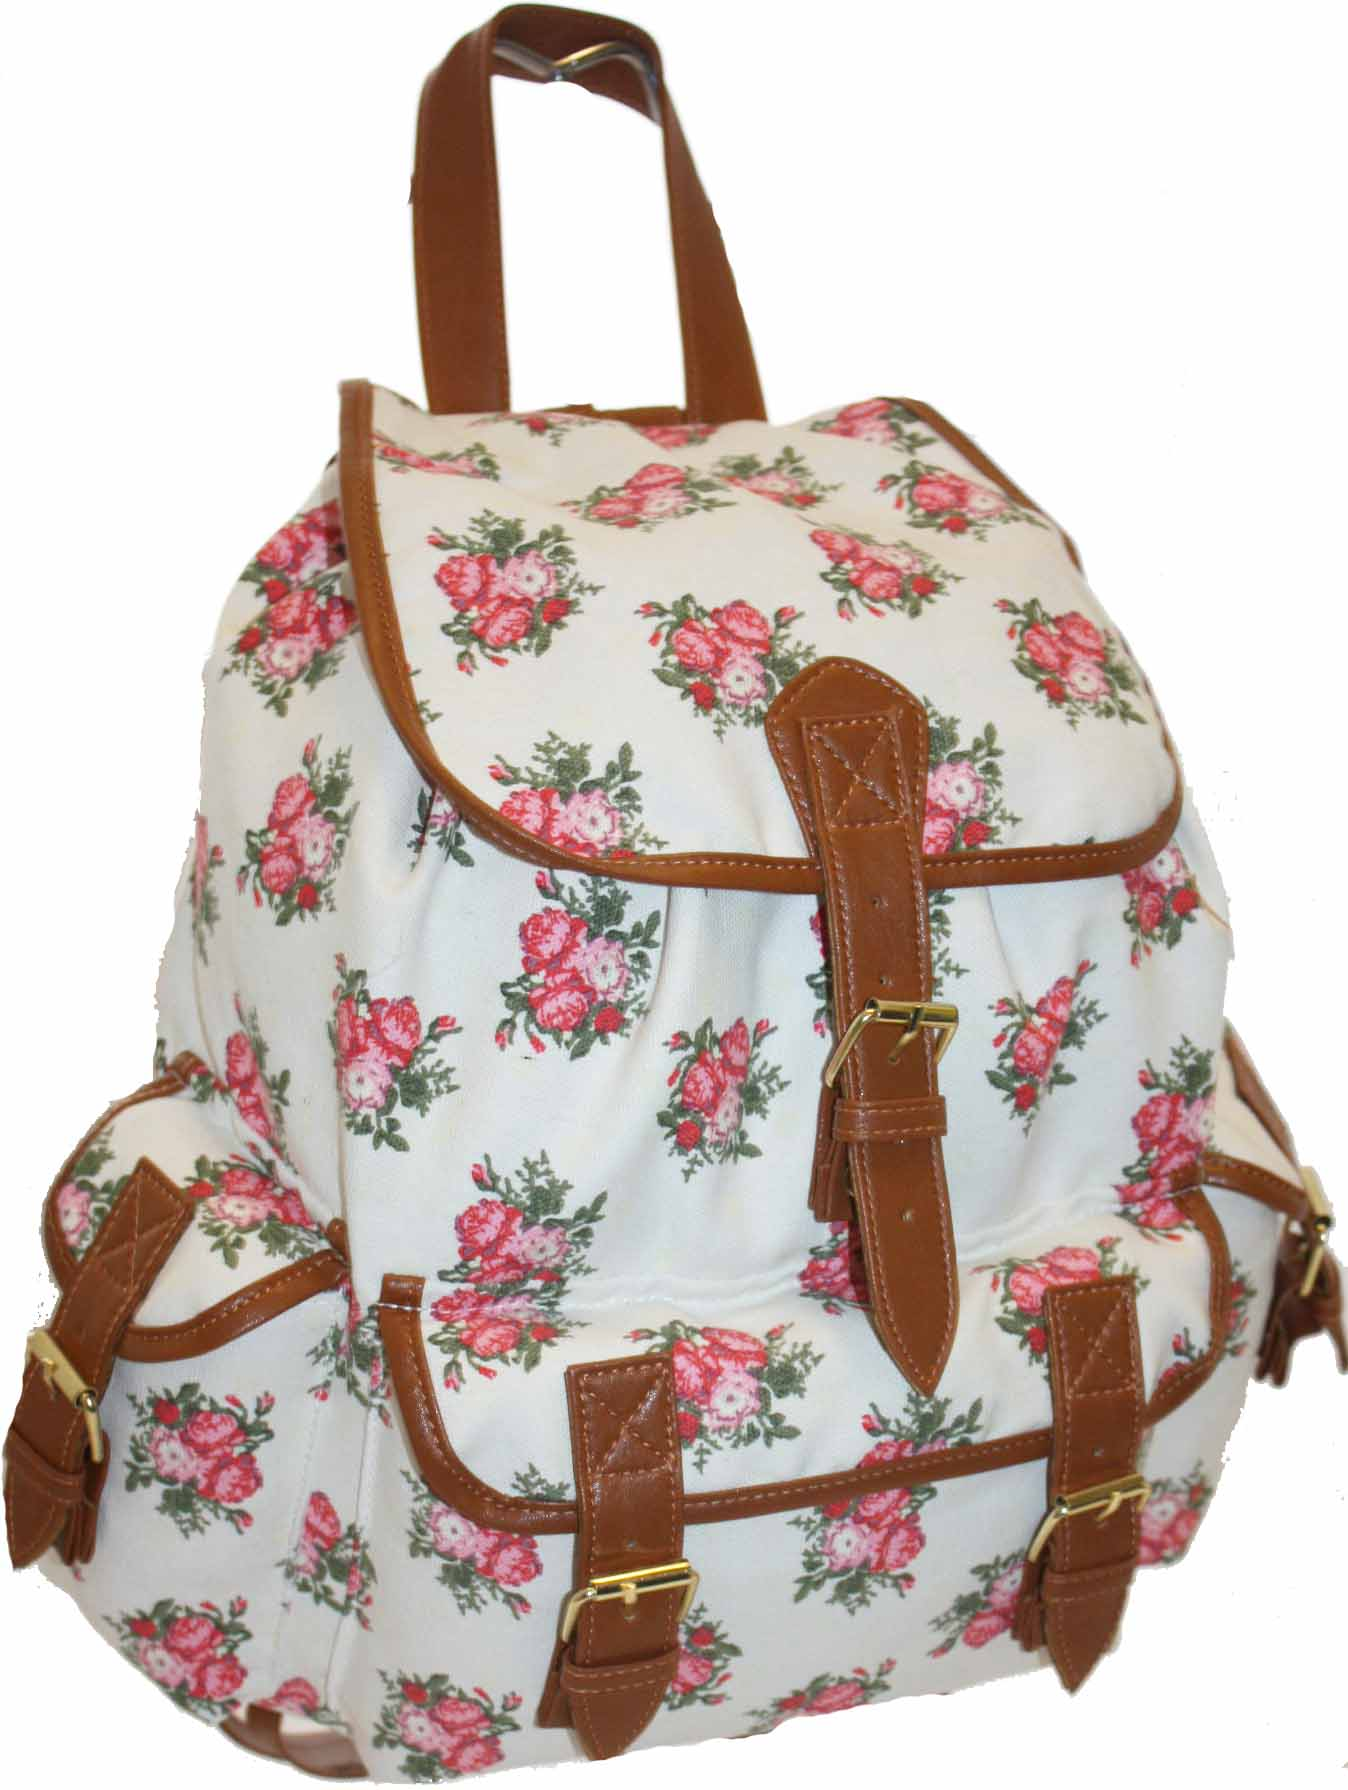 damen leinen rucksack m dchen rucksack rose reise fitness. Black Bedroom Furniture Sets. Home Design Ideas